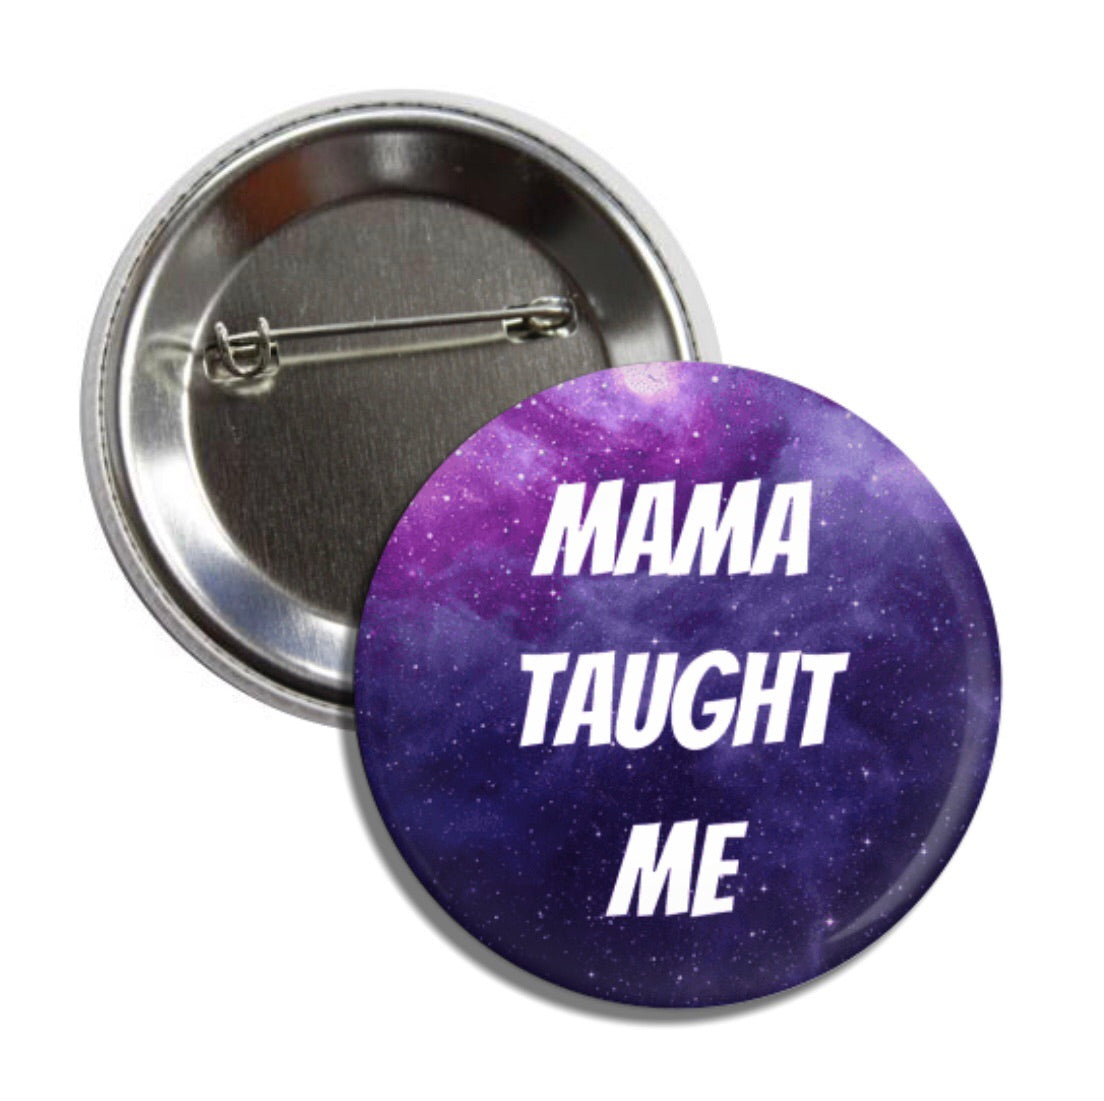 Mama taught me button